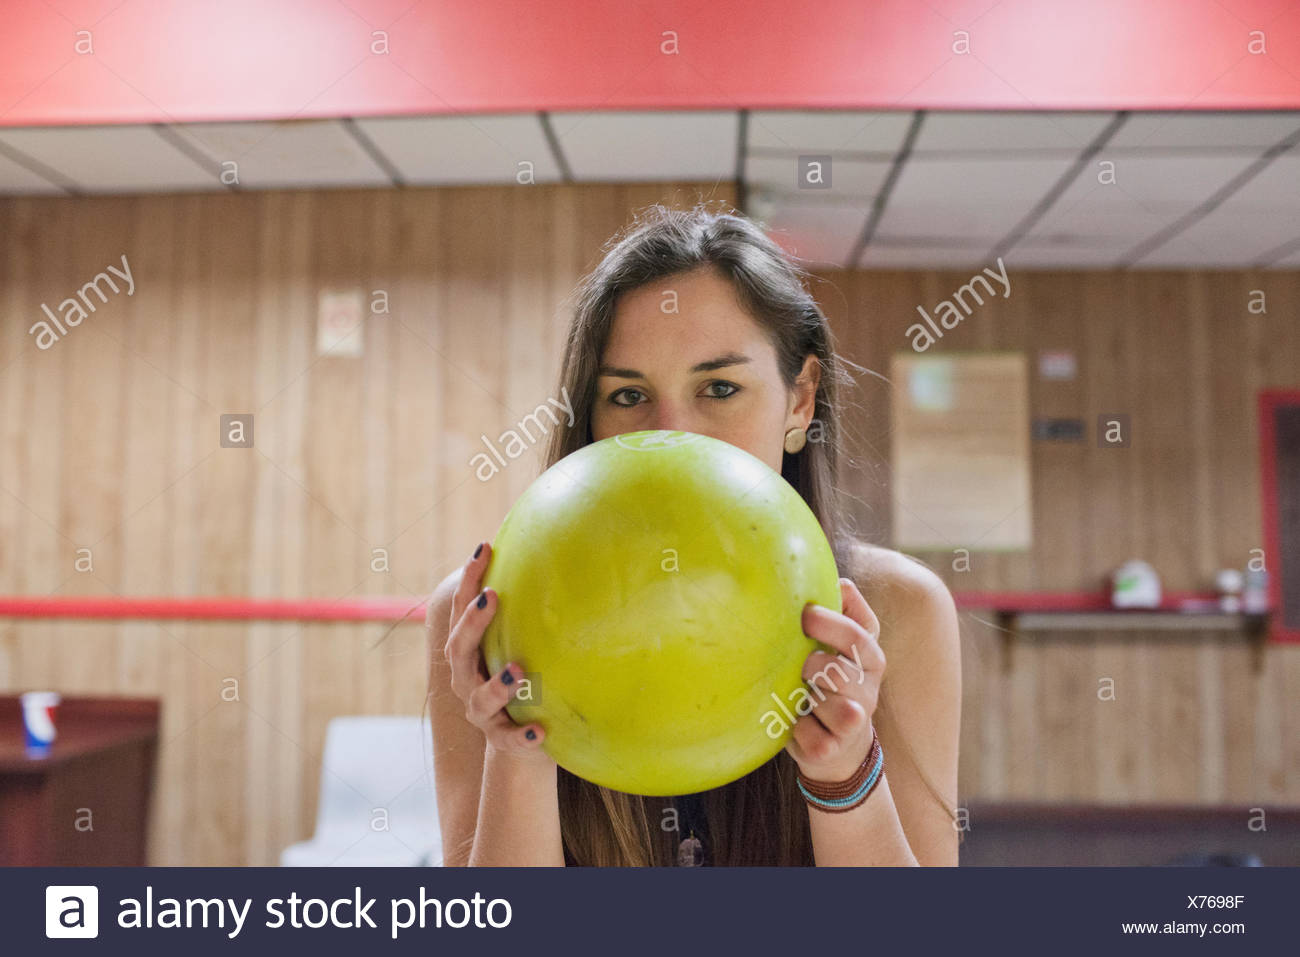 A young woman with a yellow bowling ball. - Stock Image